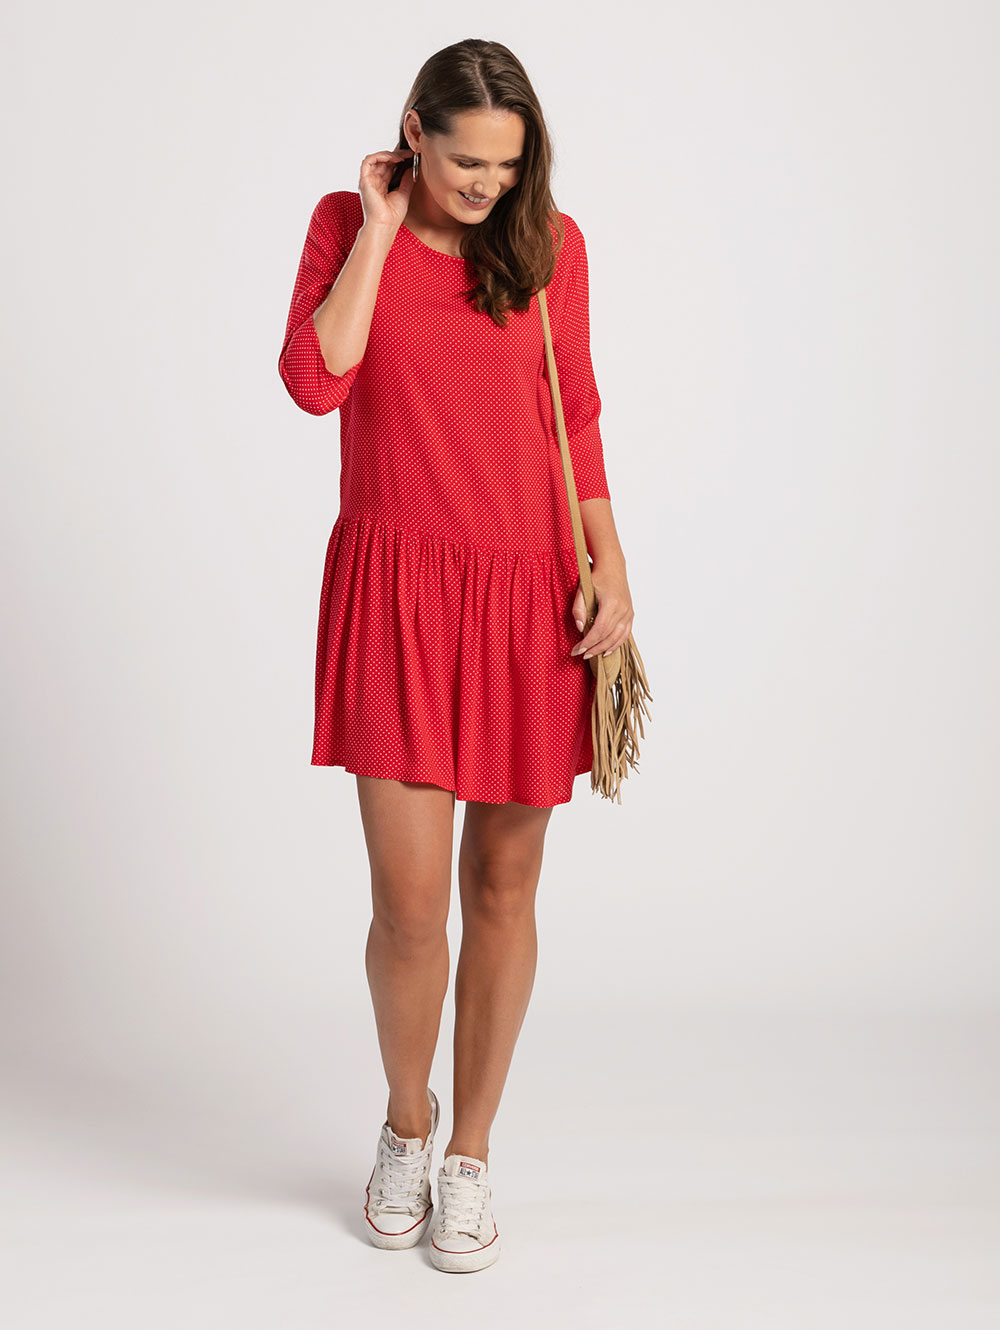 Drop Waist Dress in Red Polka Dot